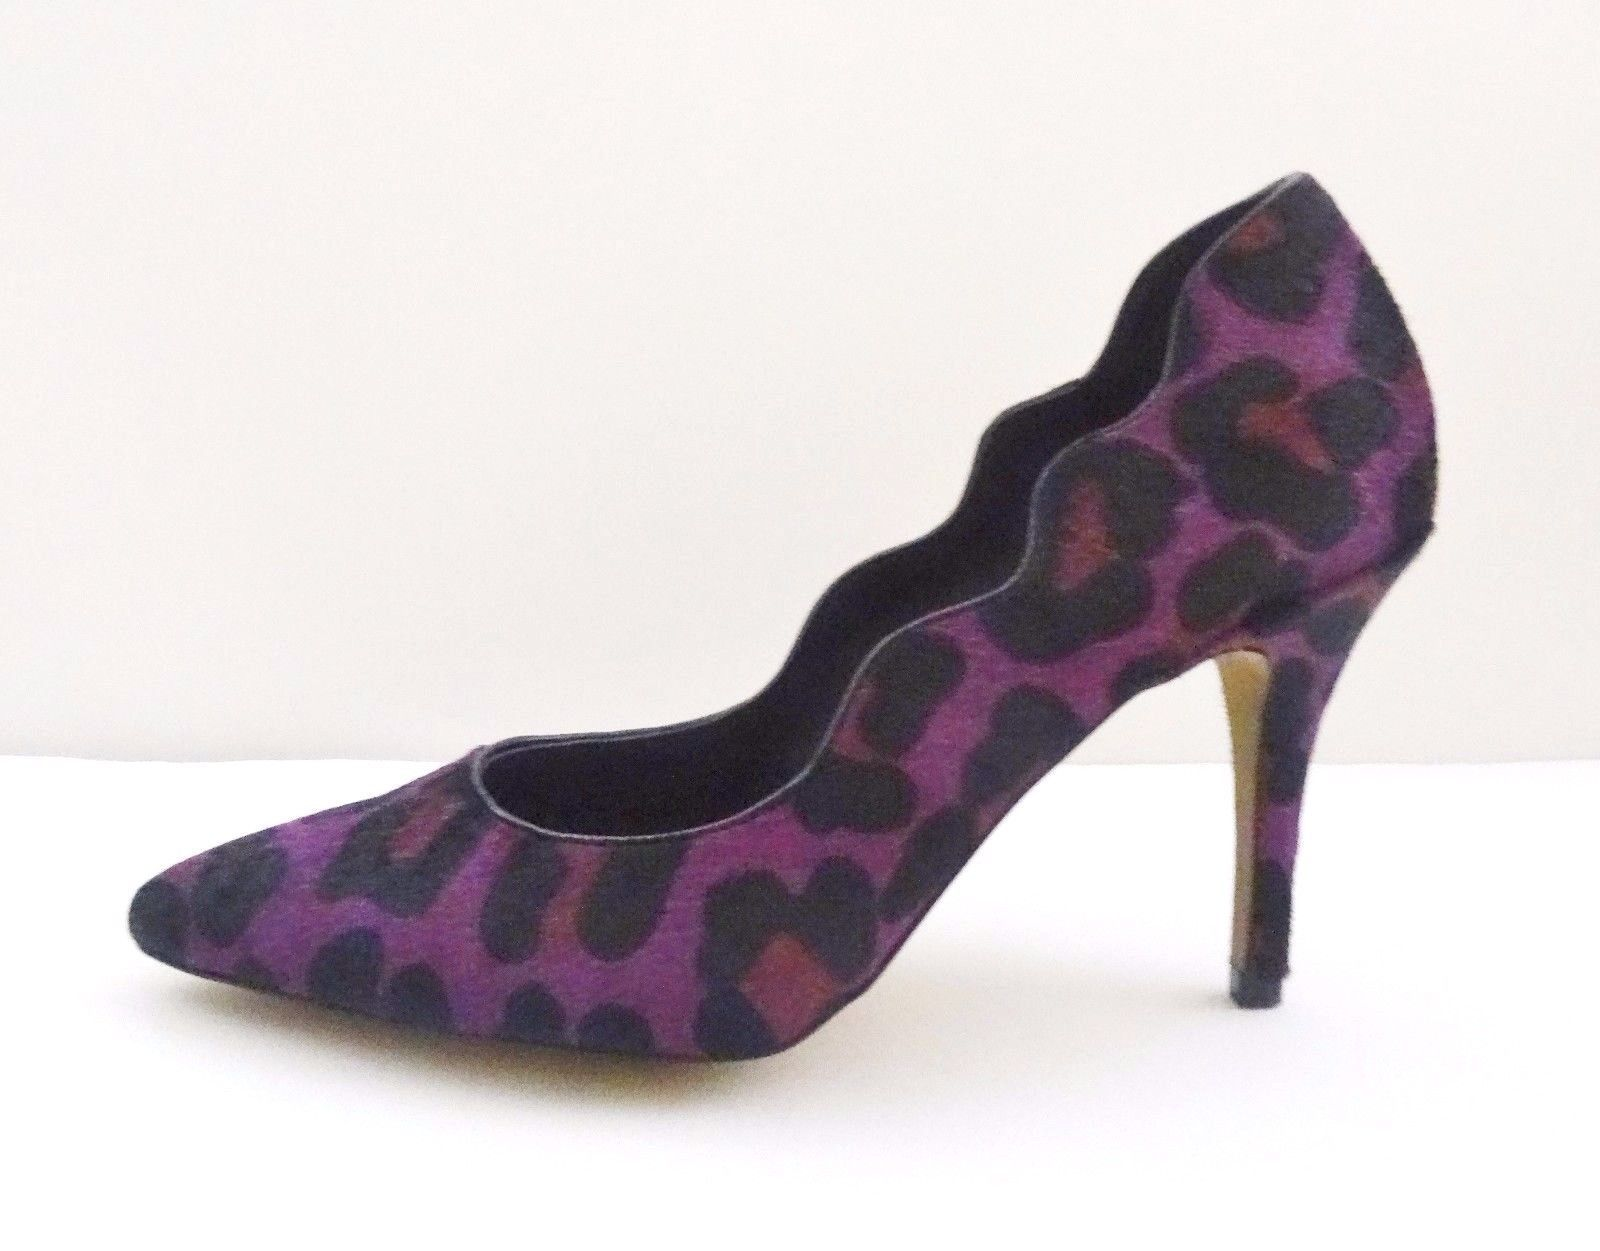 NIB Betsey Johnson Pointed Toe Scalloped Genuine Calf Pump Shoes Sz 7.5 Purple